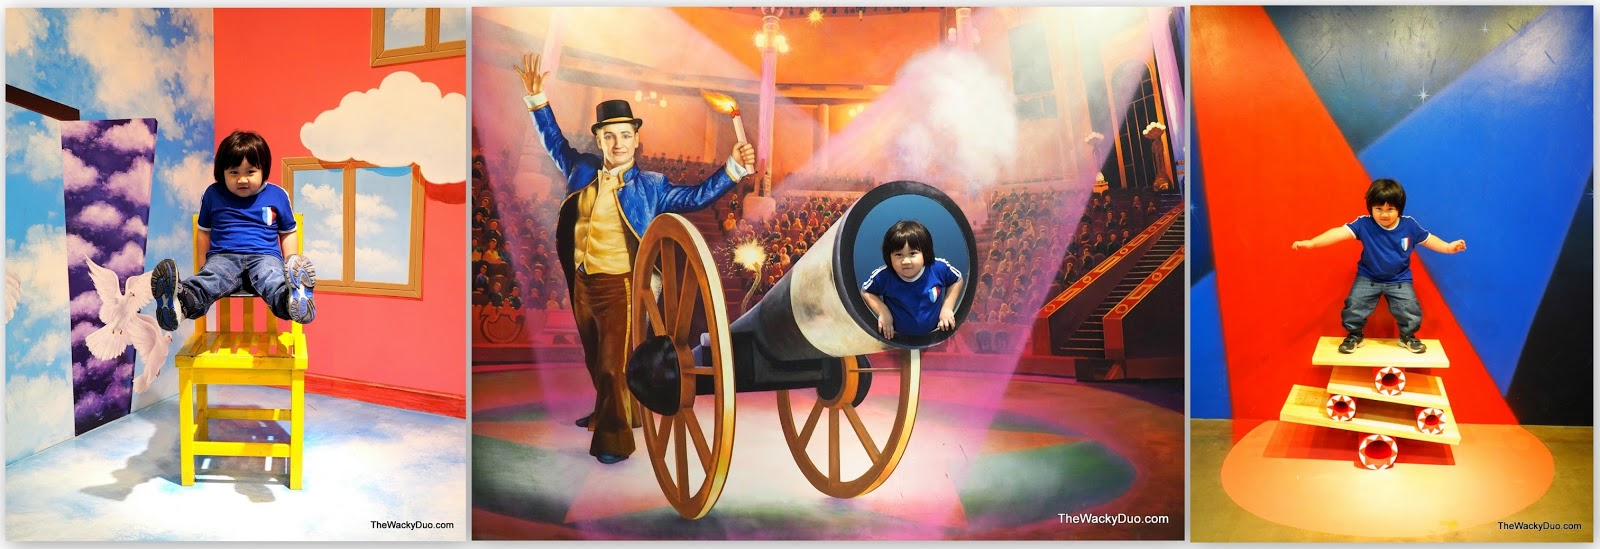 Trickeye Museum Rws Singapore Guide For Families The Wacky Duo Tiket Circus Acts